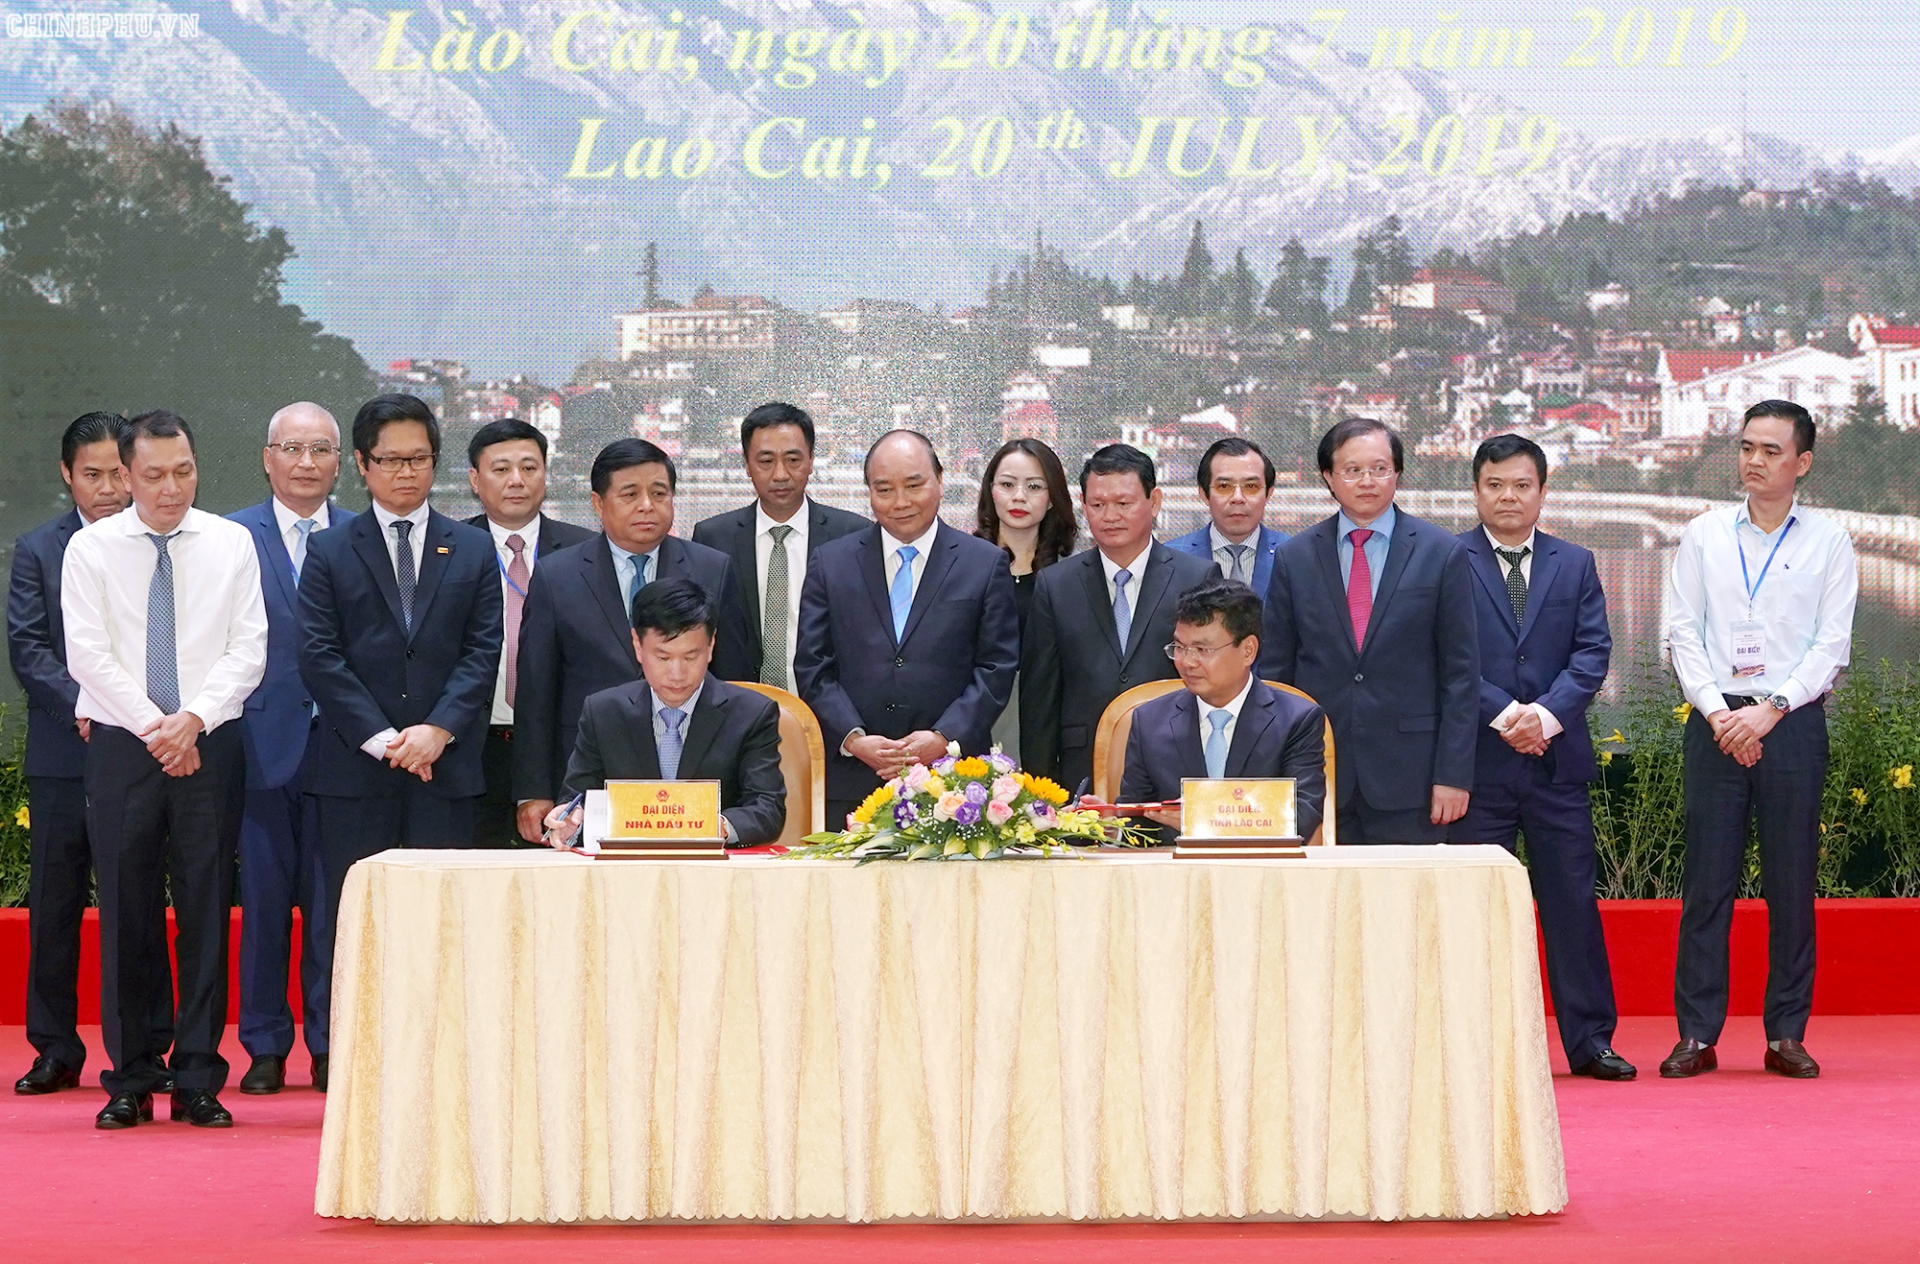 lao cai an emerging destination of investors